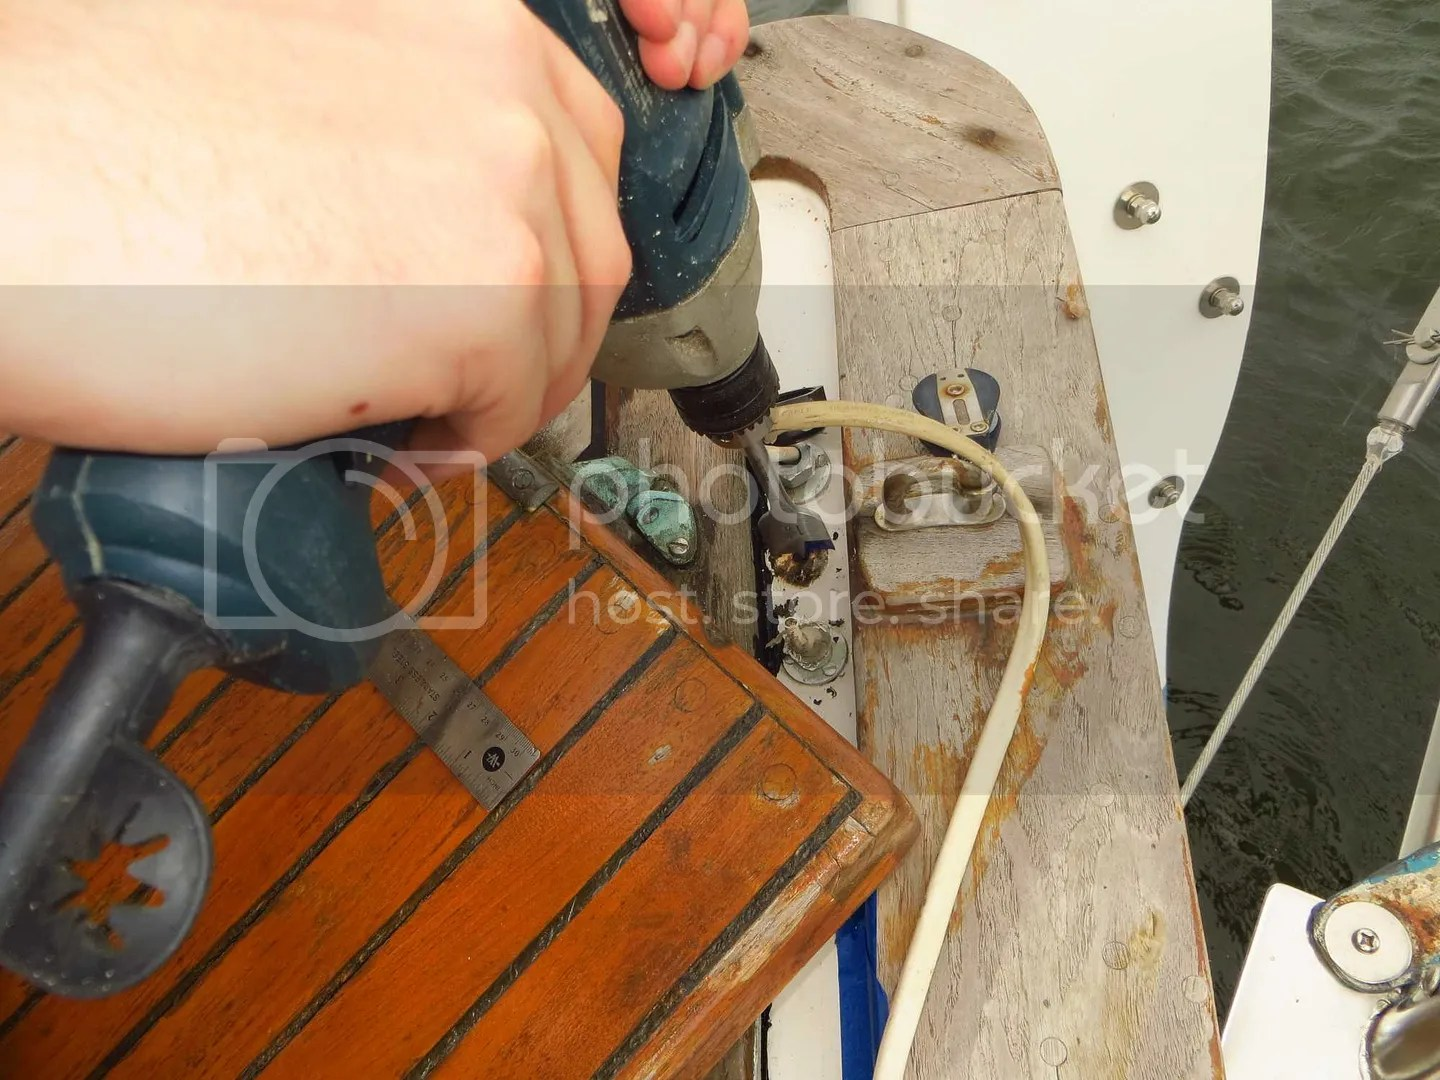 Drilling a hole in the boat for propane hose